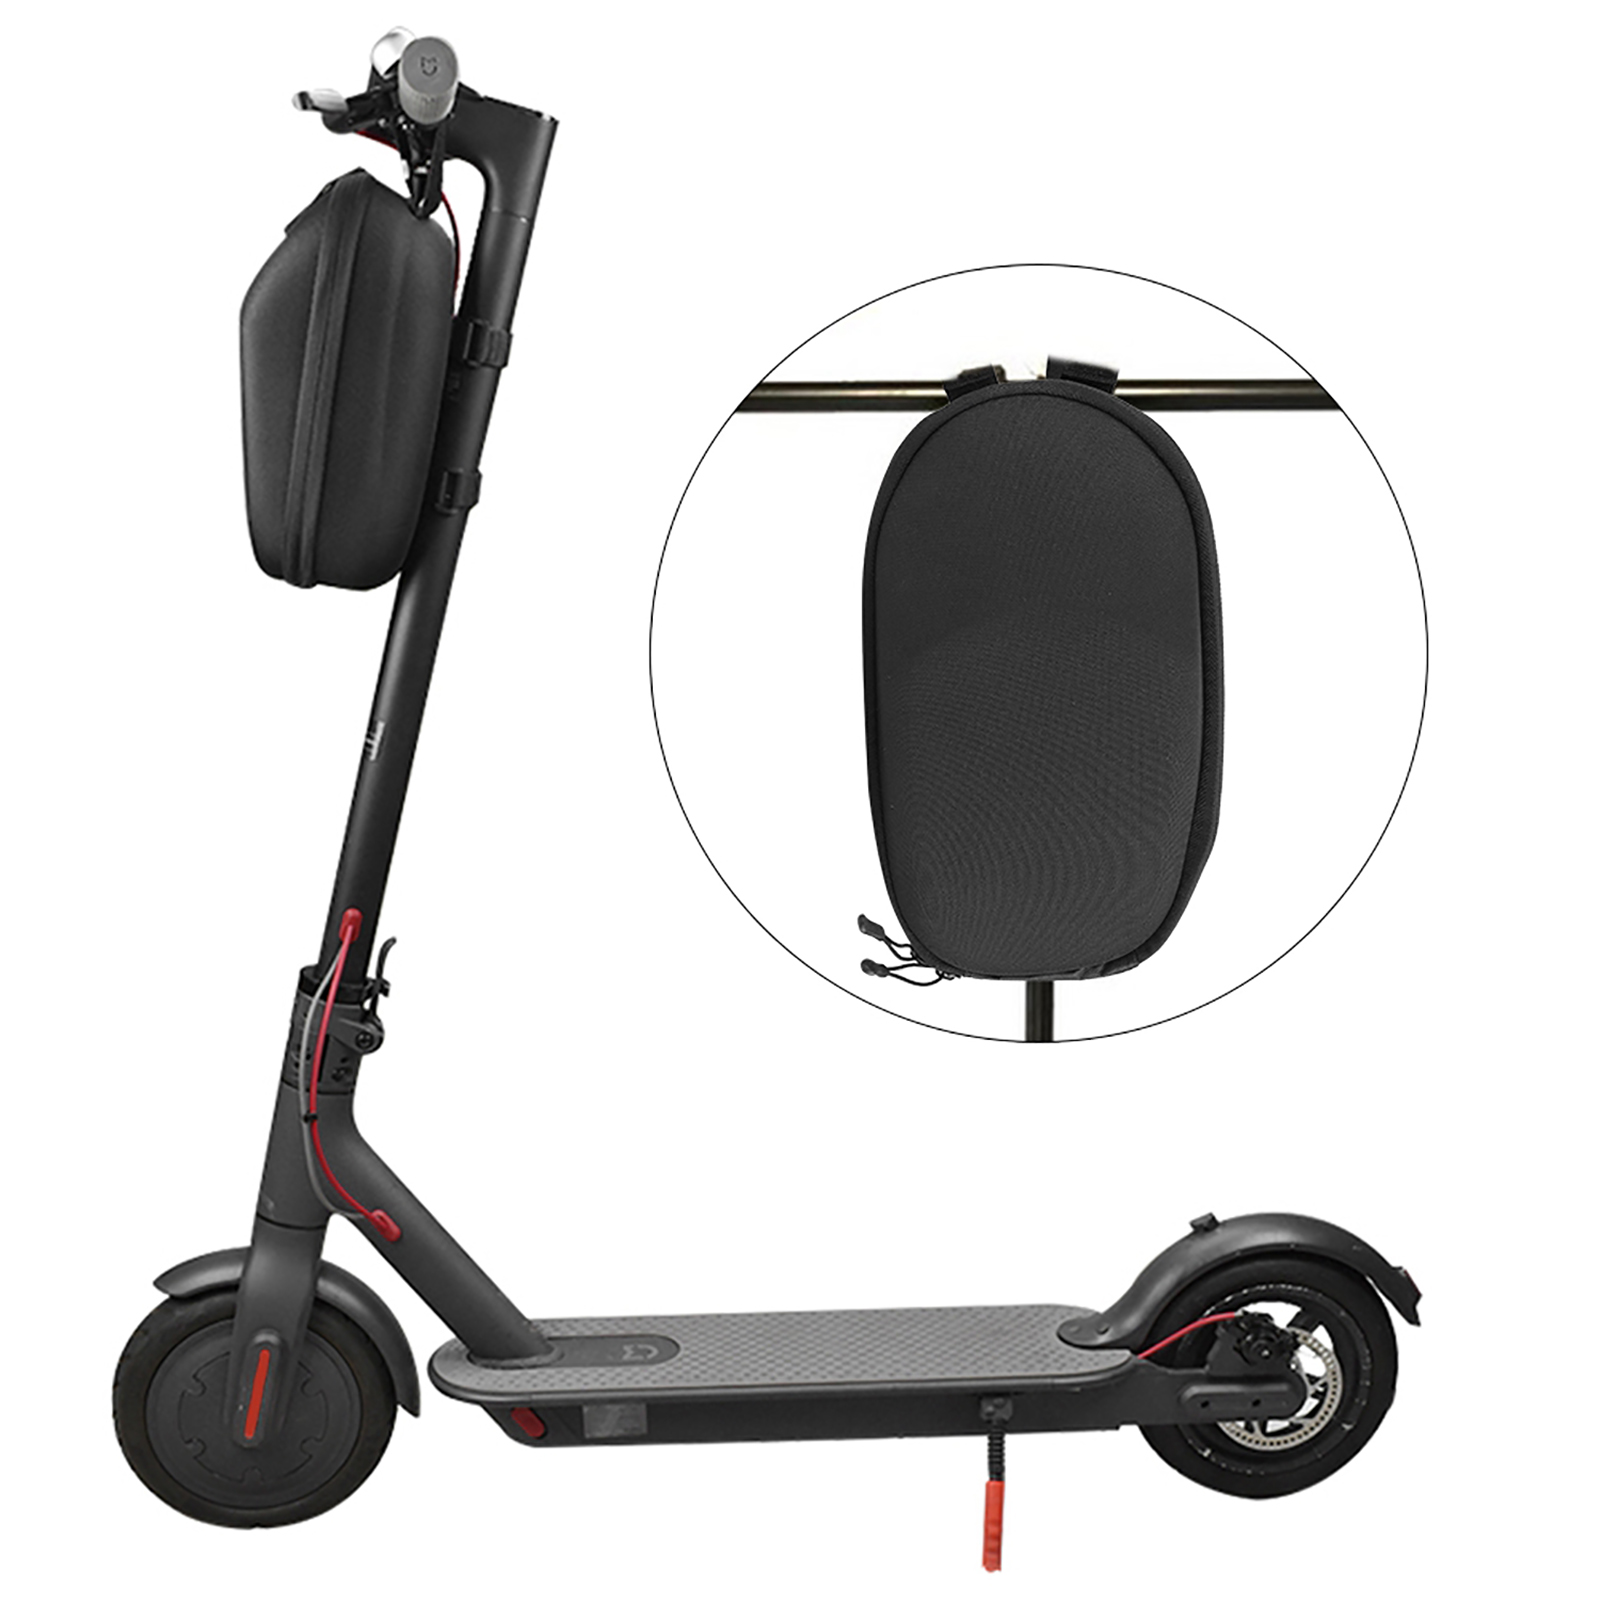 For-Xiaomi-Mijia-M365-Electric-Scooter-Various-Repair-Replacement-Accessories thumbnail 27